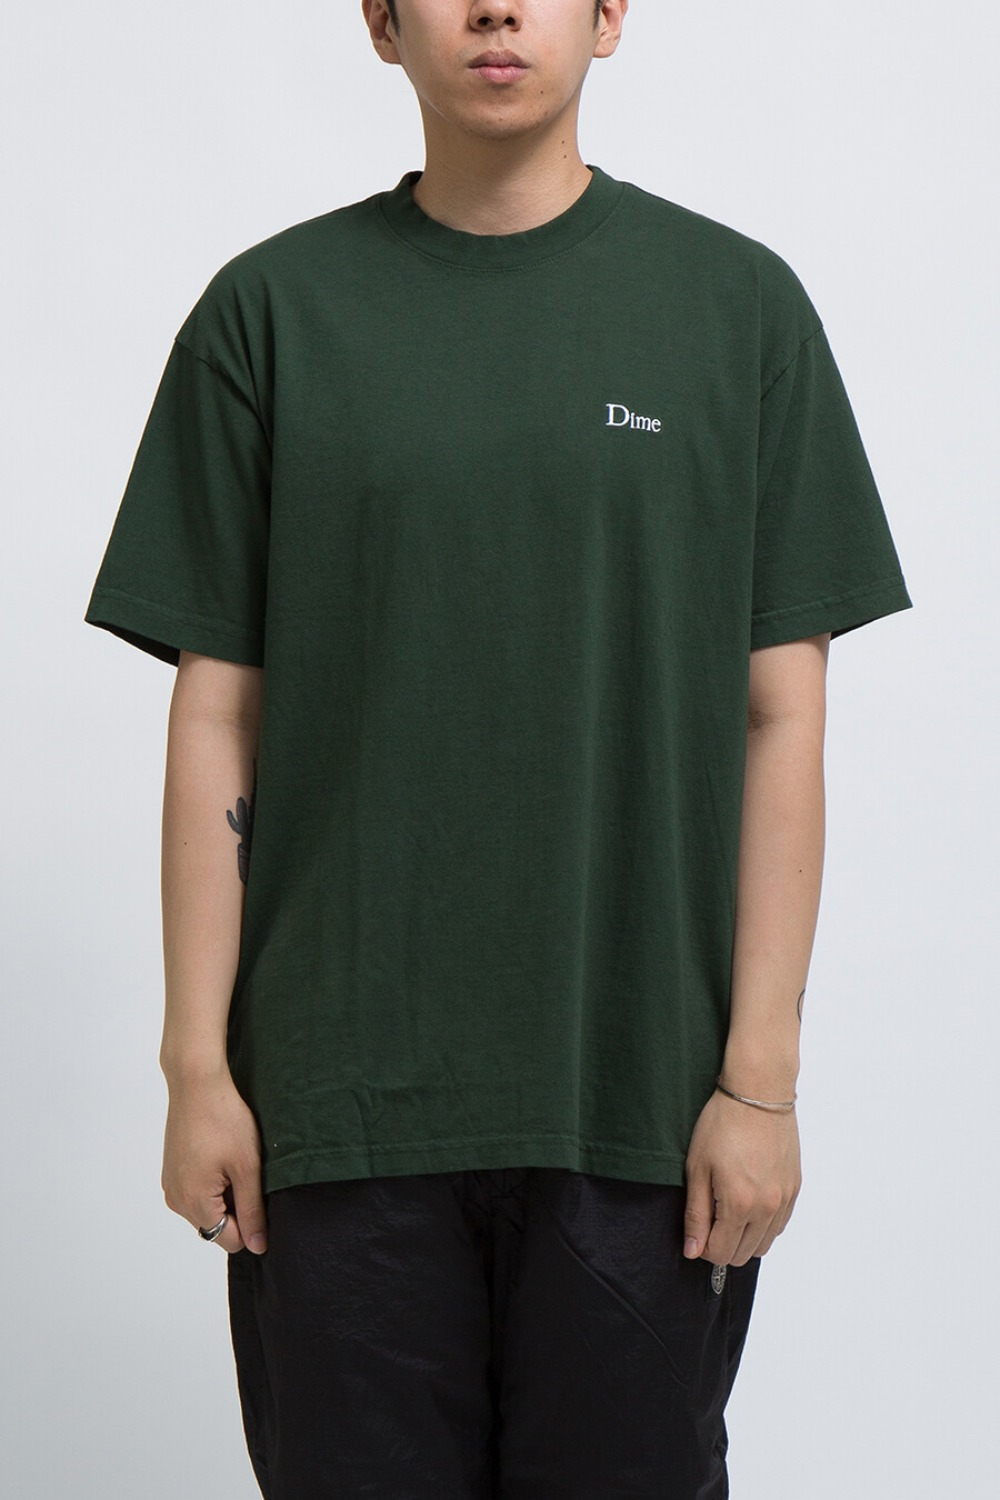 DIME CLASSIC EMBROIDERED T-SHIRT OLIVE